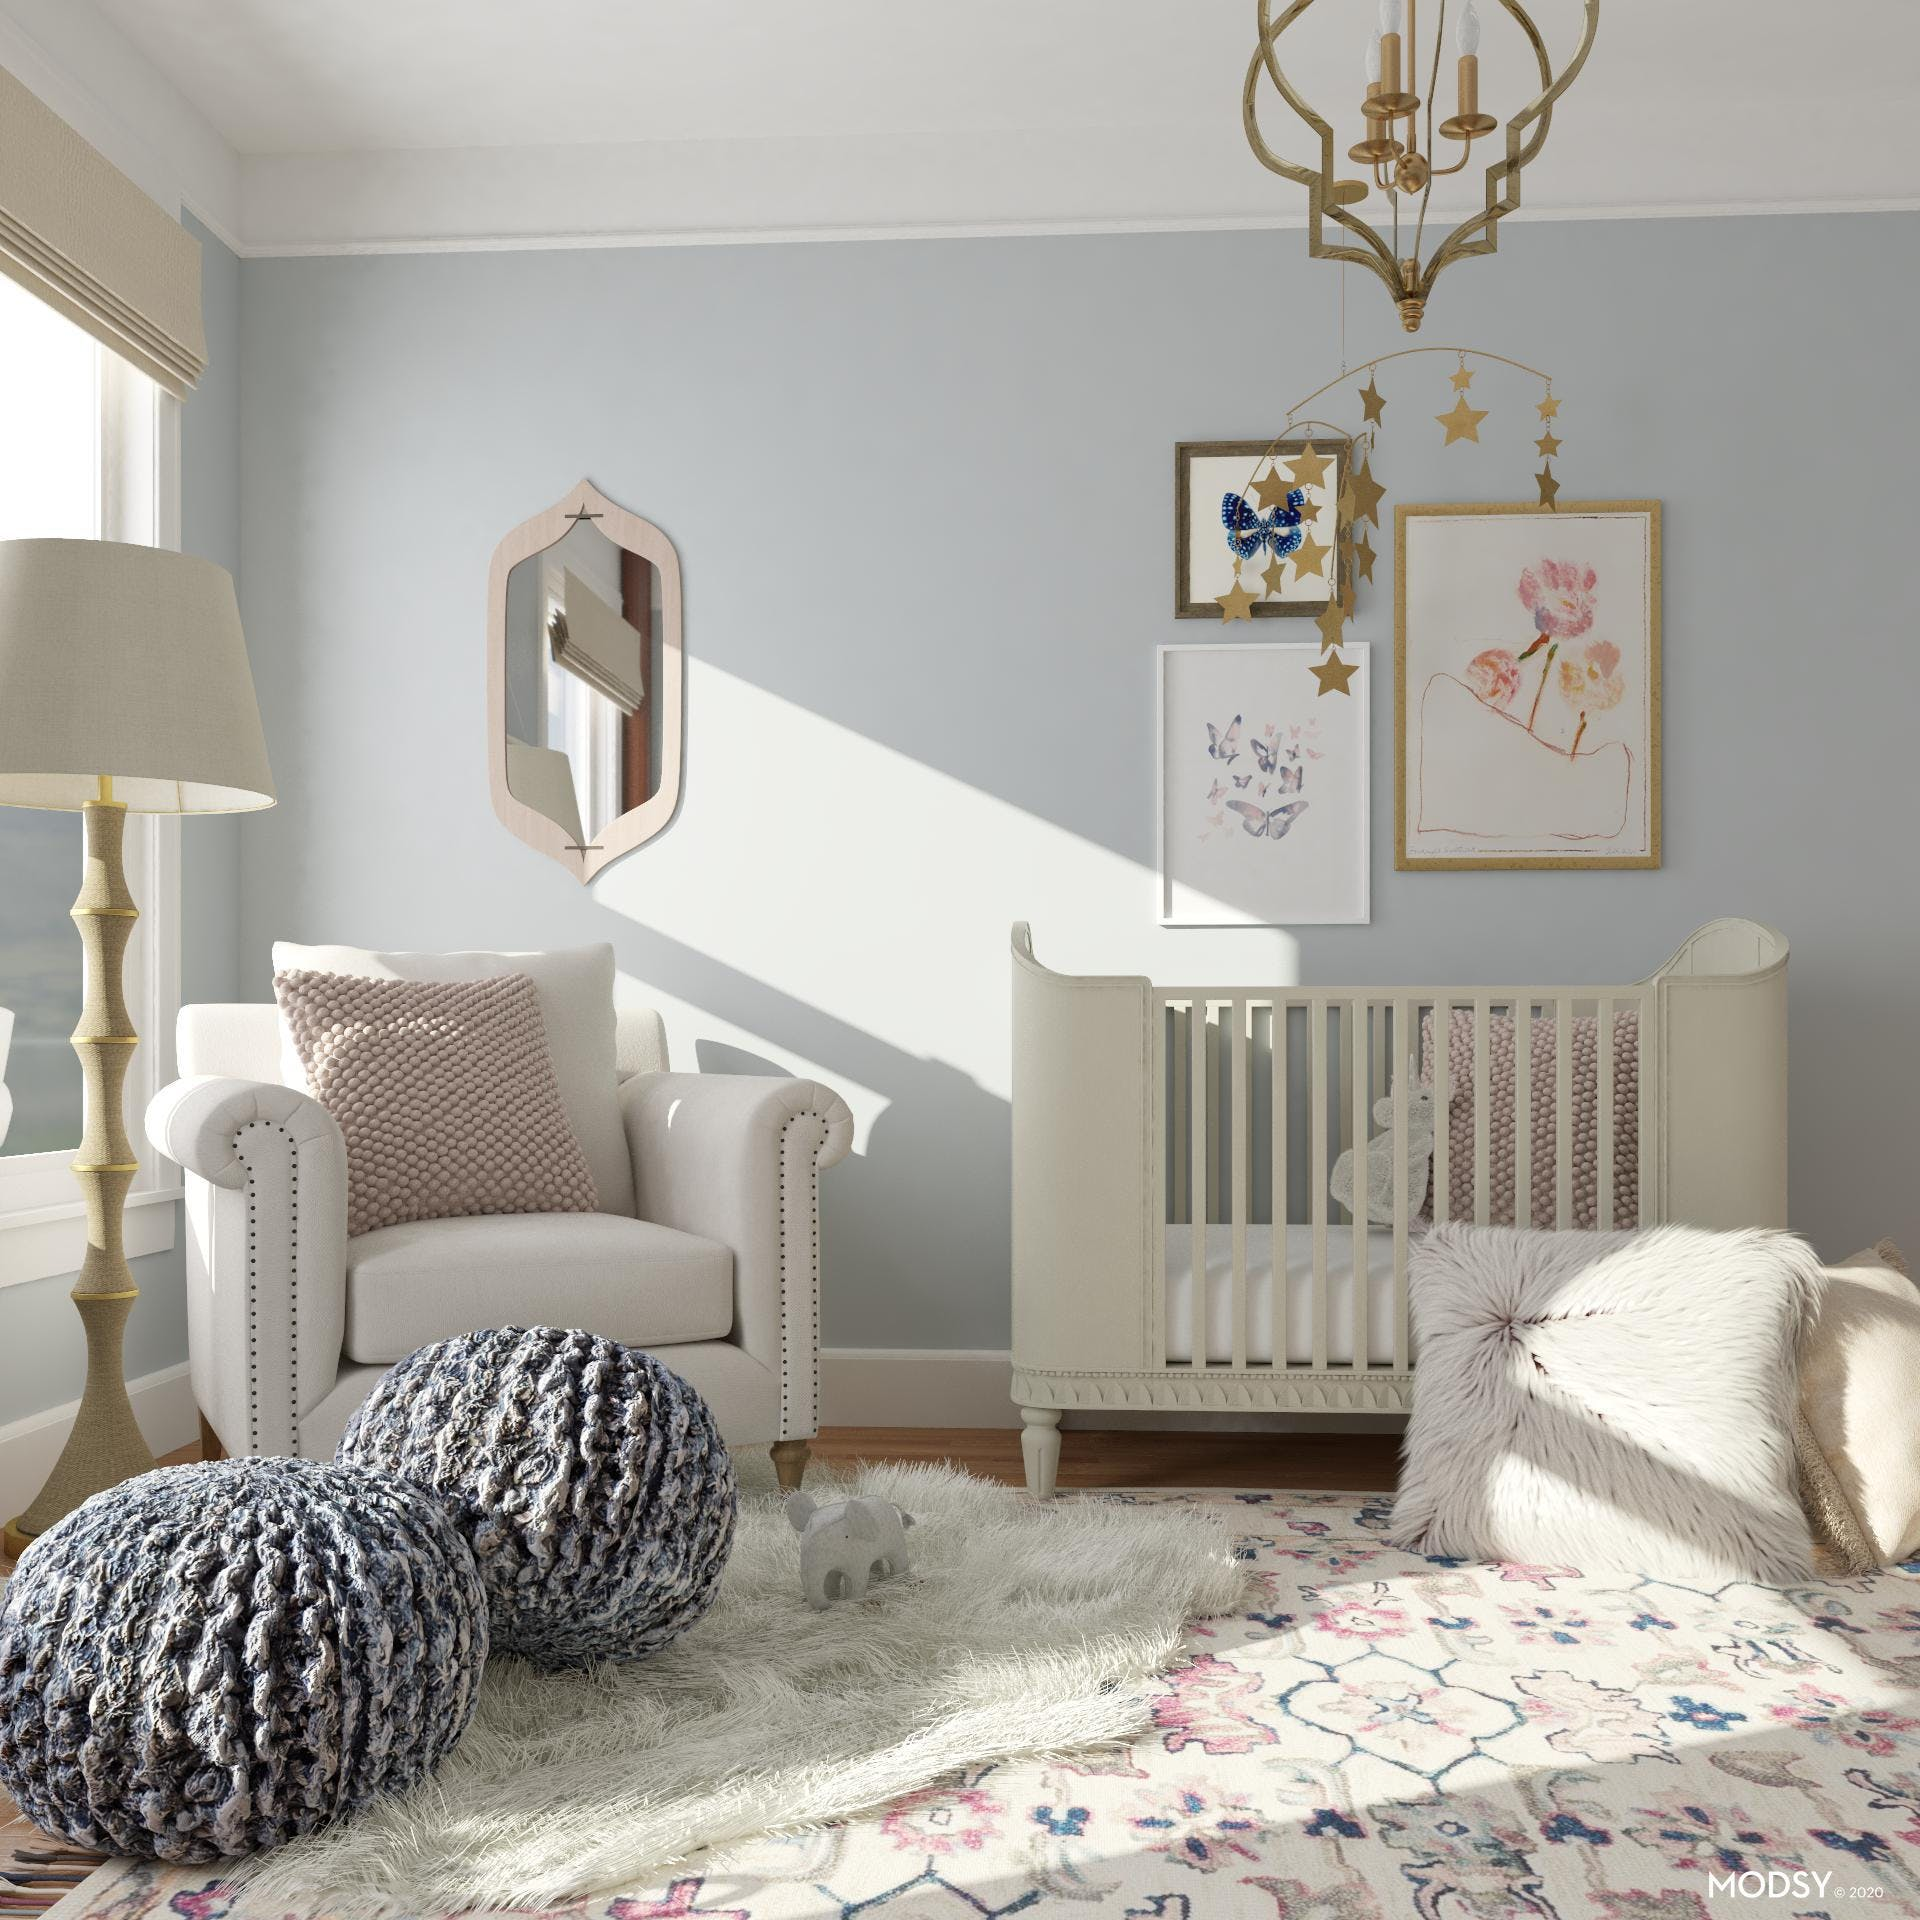 Layered Textures in Rustic Nursery